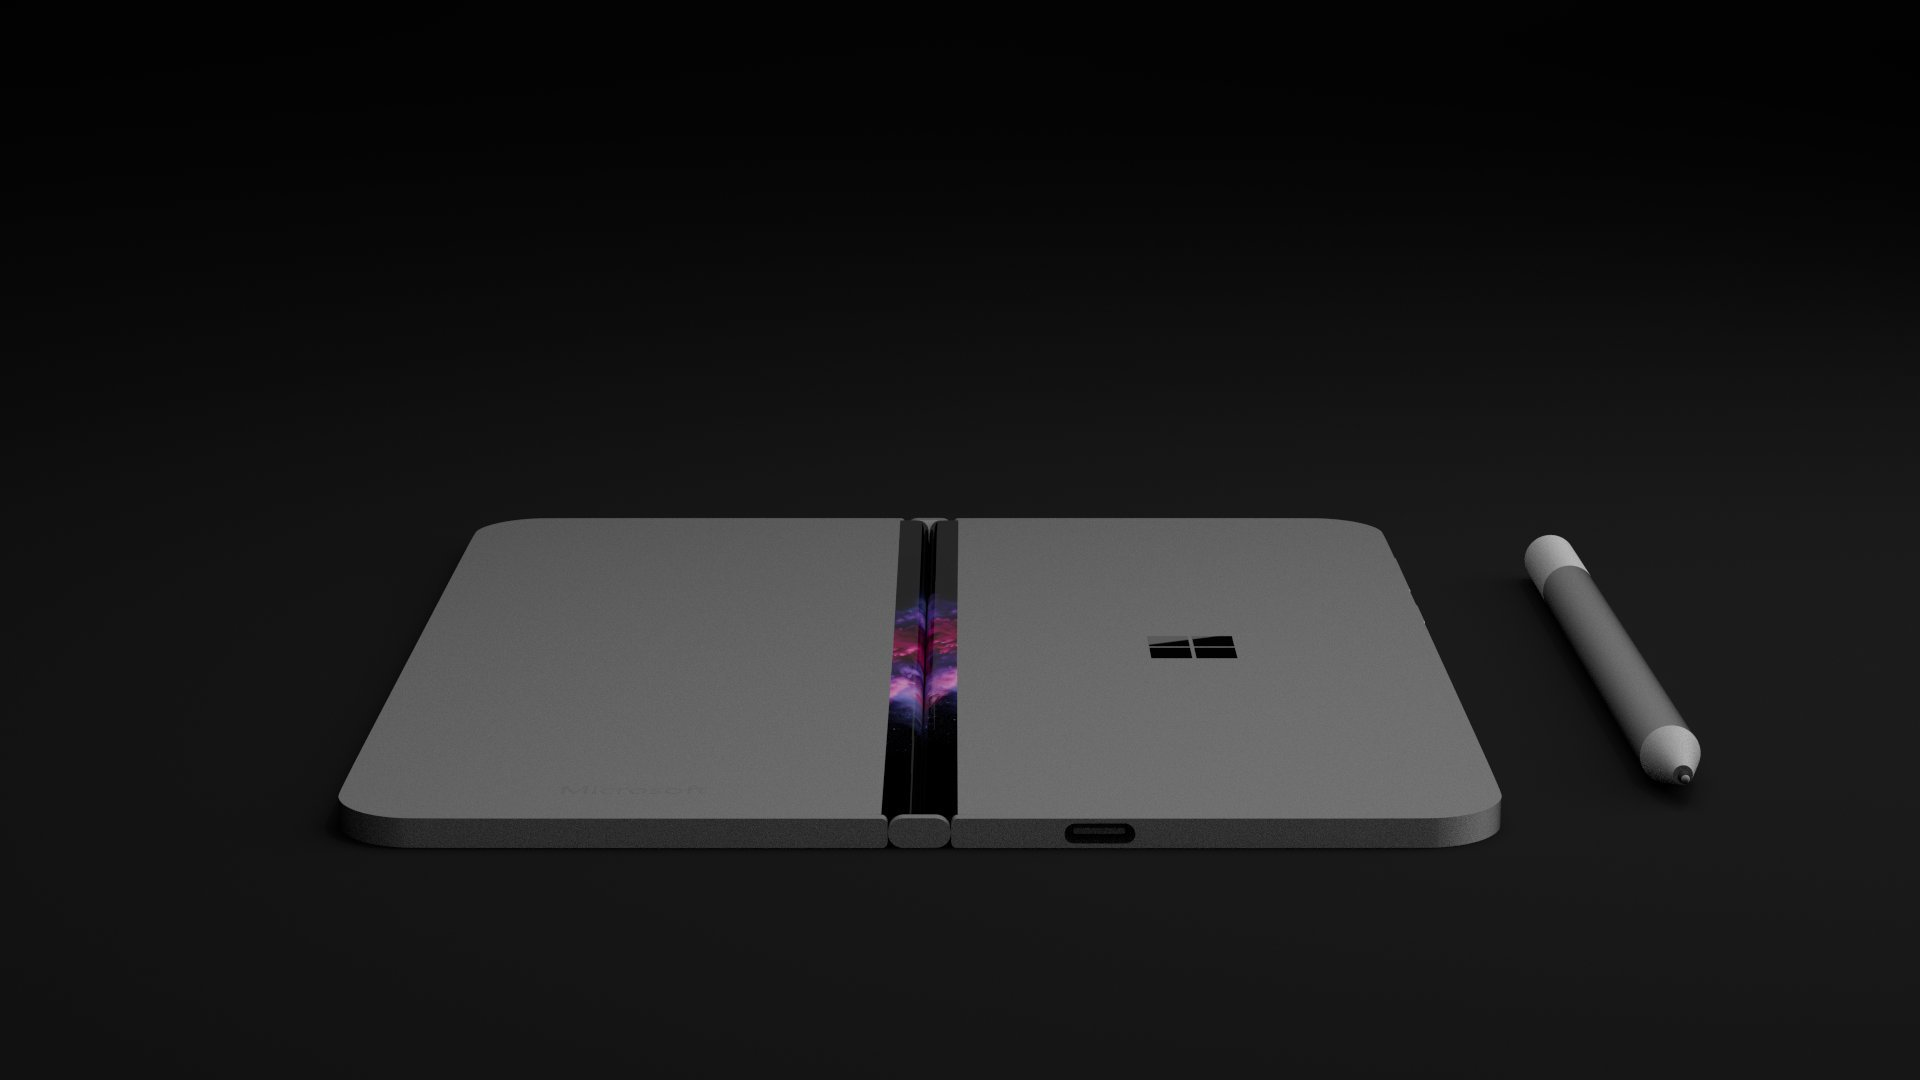 Microsoft Surface Andromeda concept